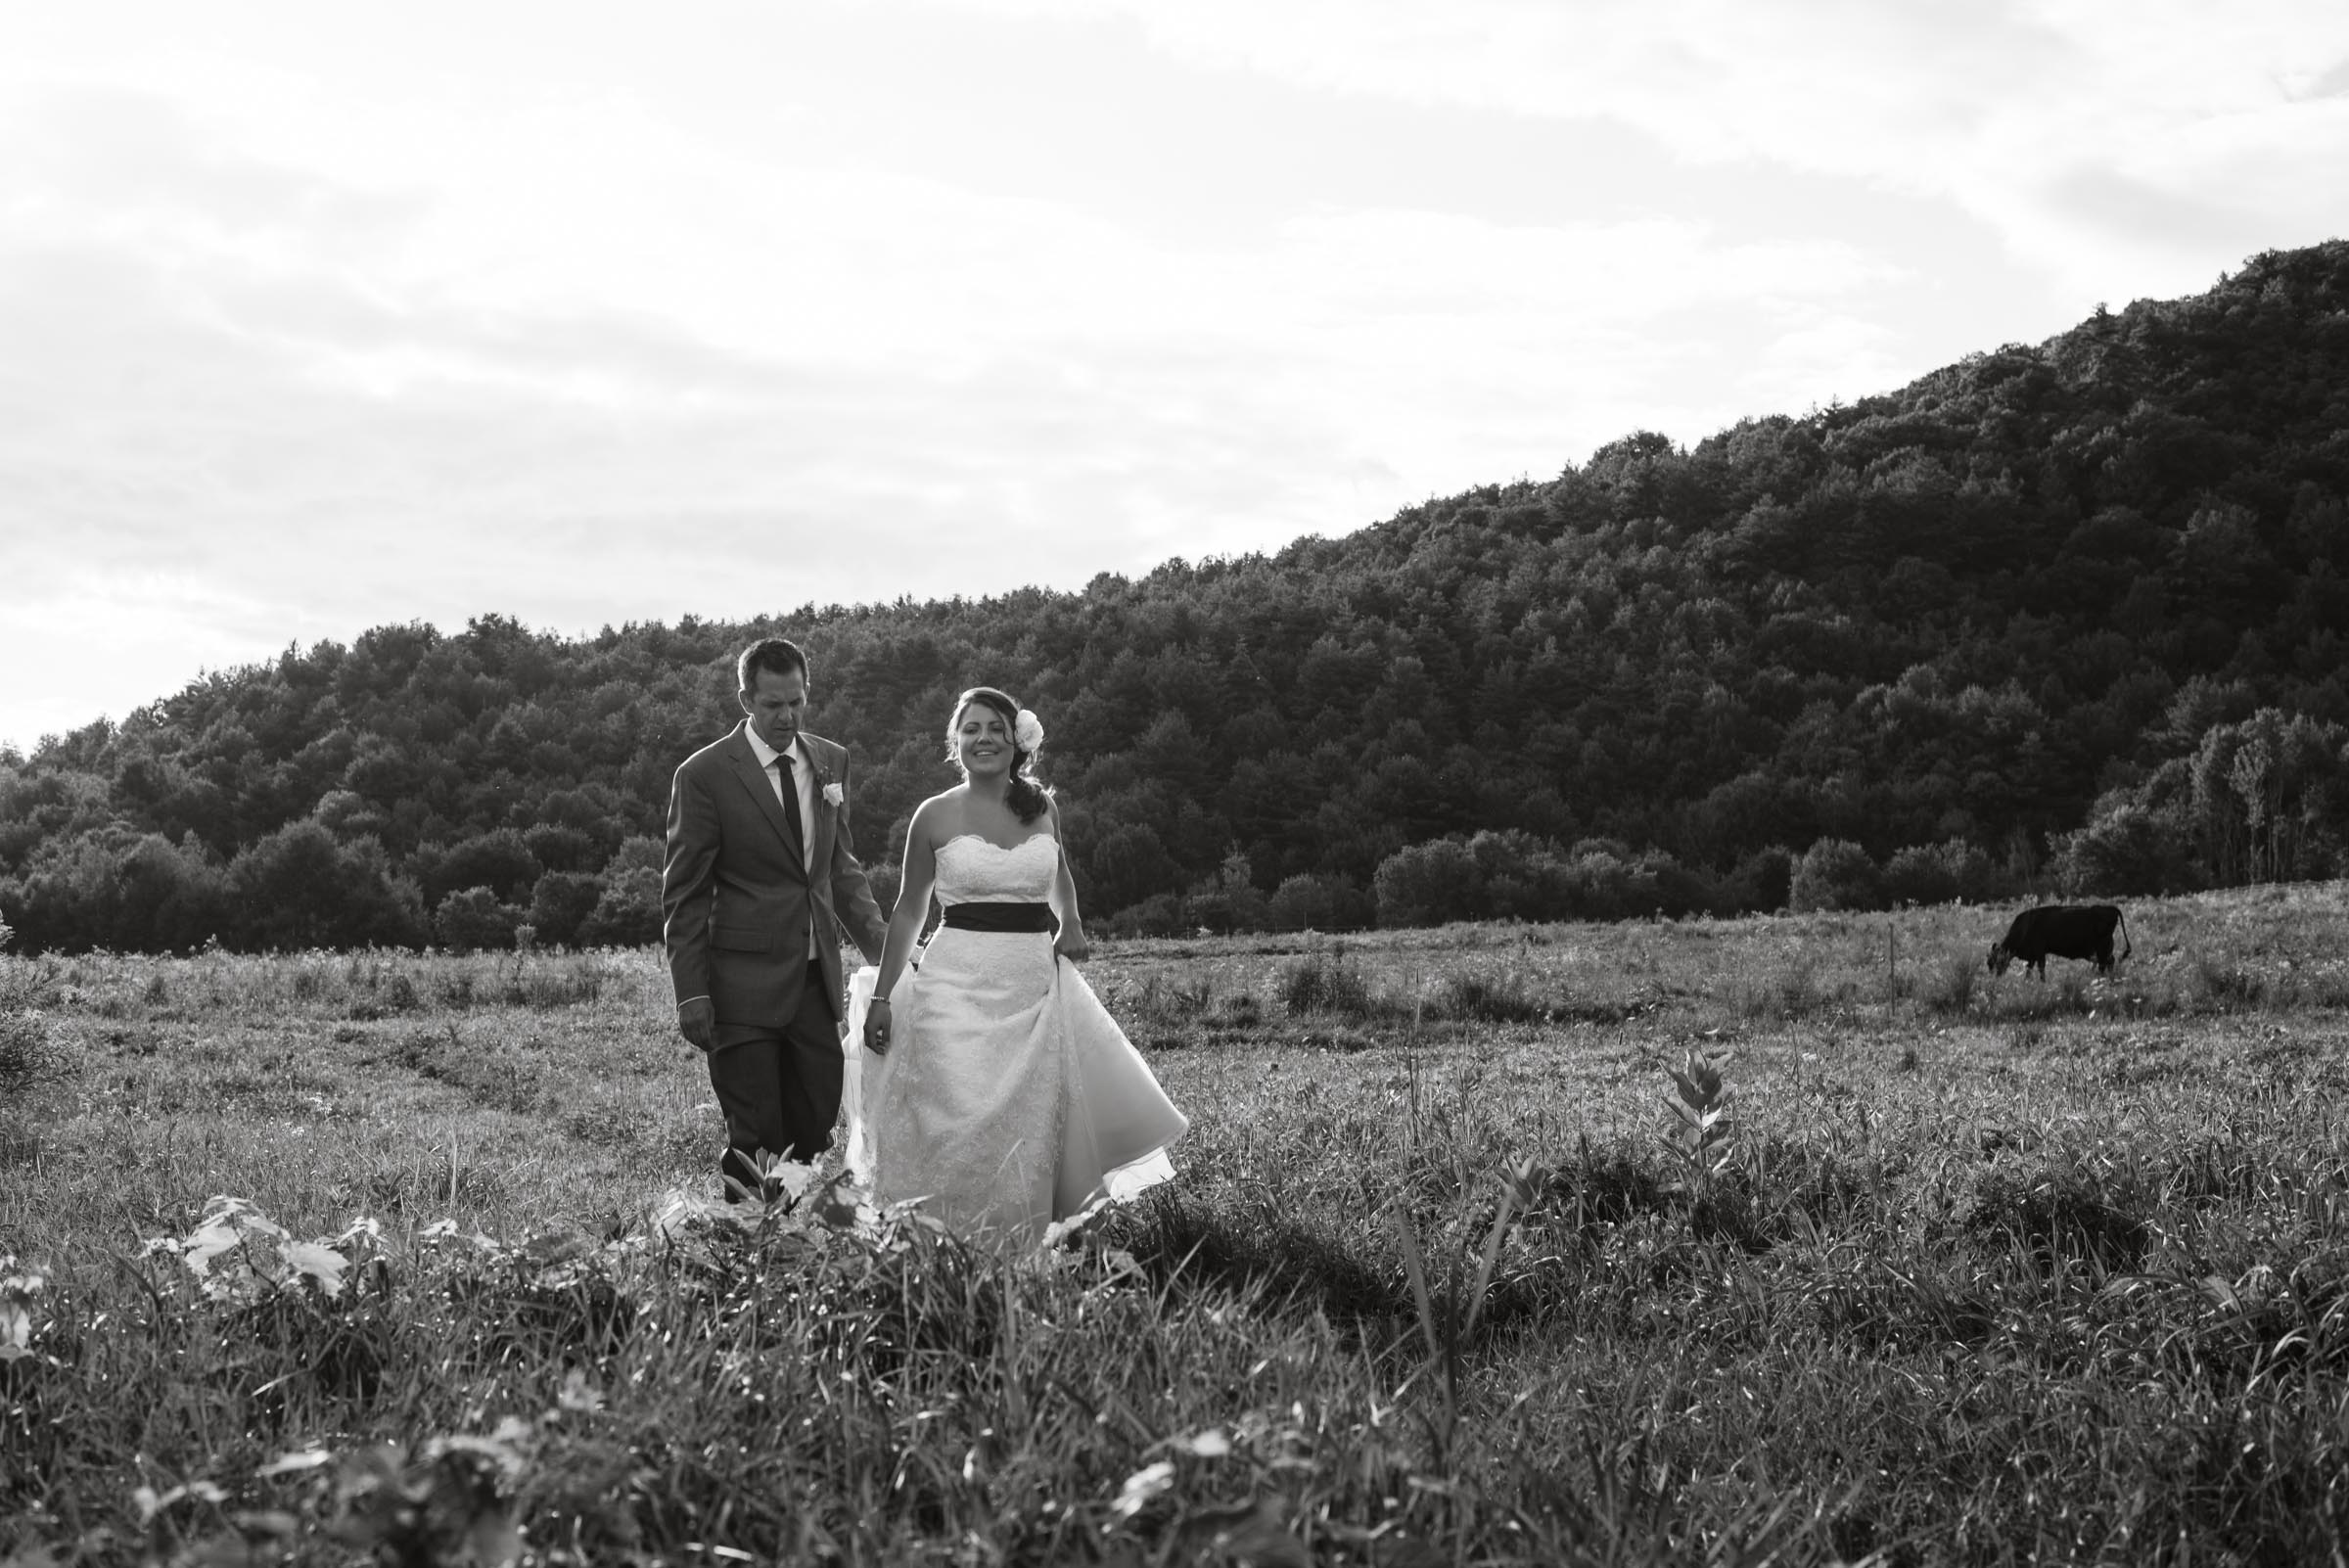 08232014-Chris&VanessaWedding-JuliaLuckettPhotography-320